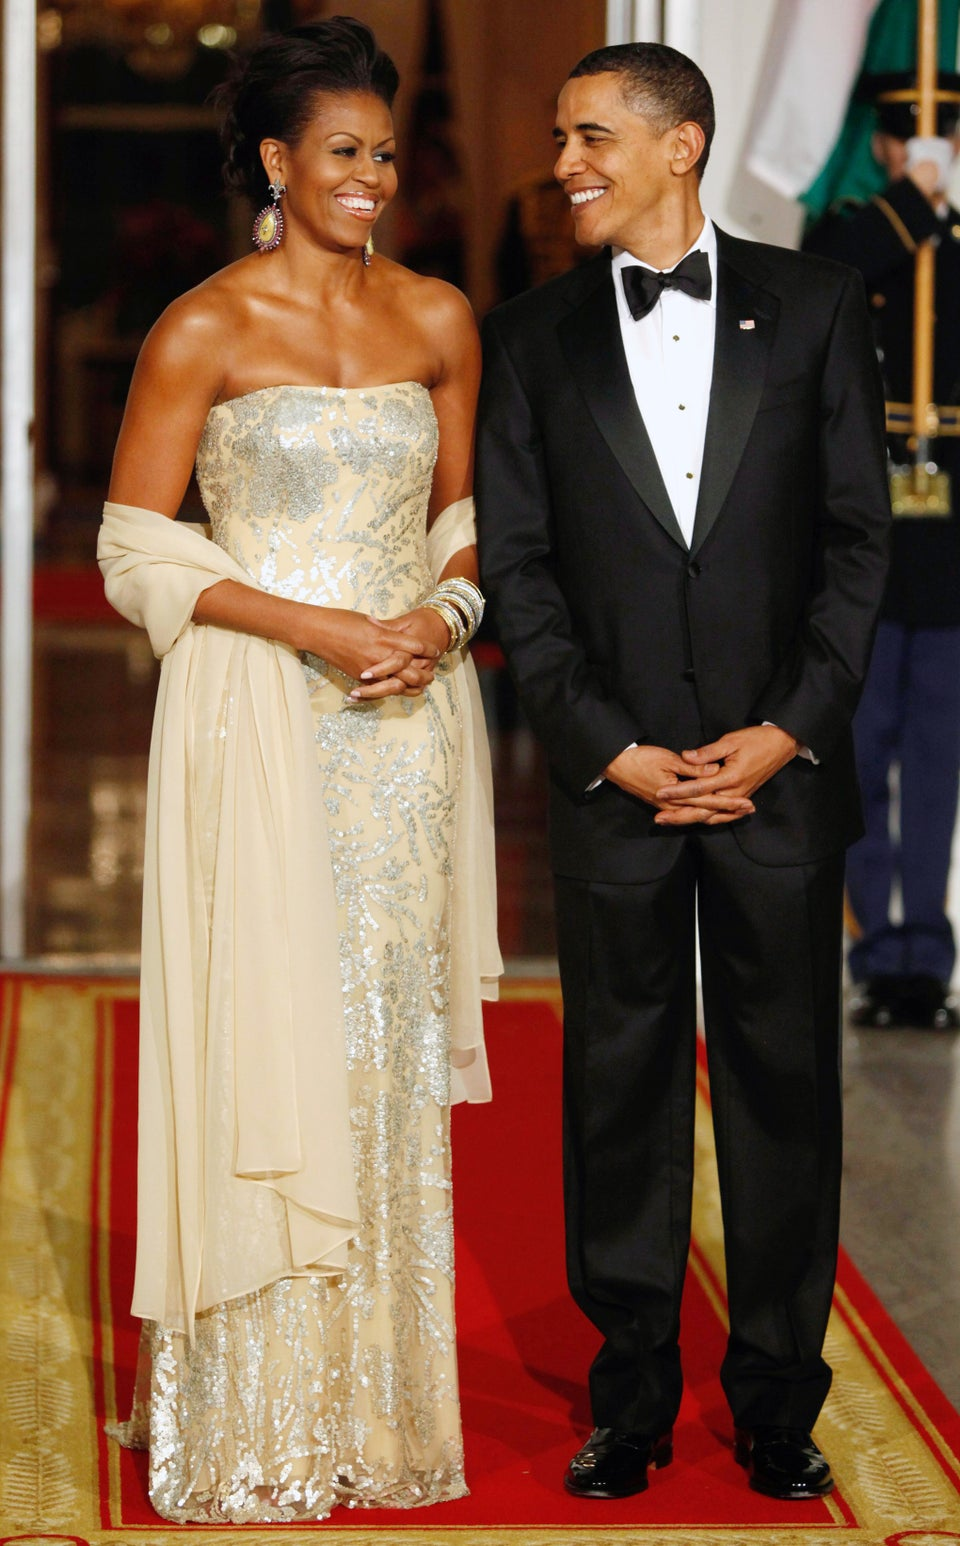 President Obama Promises His Museum And Library in Chicago Won't Be an 'Ego Trip' — But It Will Include Michelle's Dresses